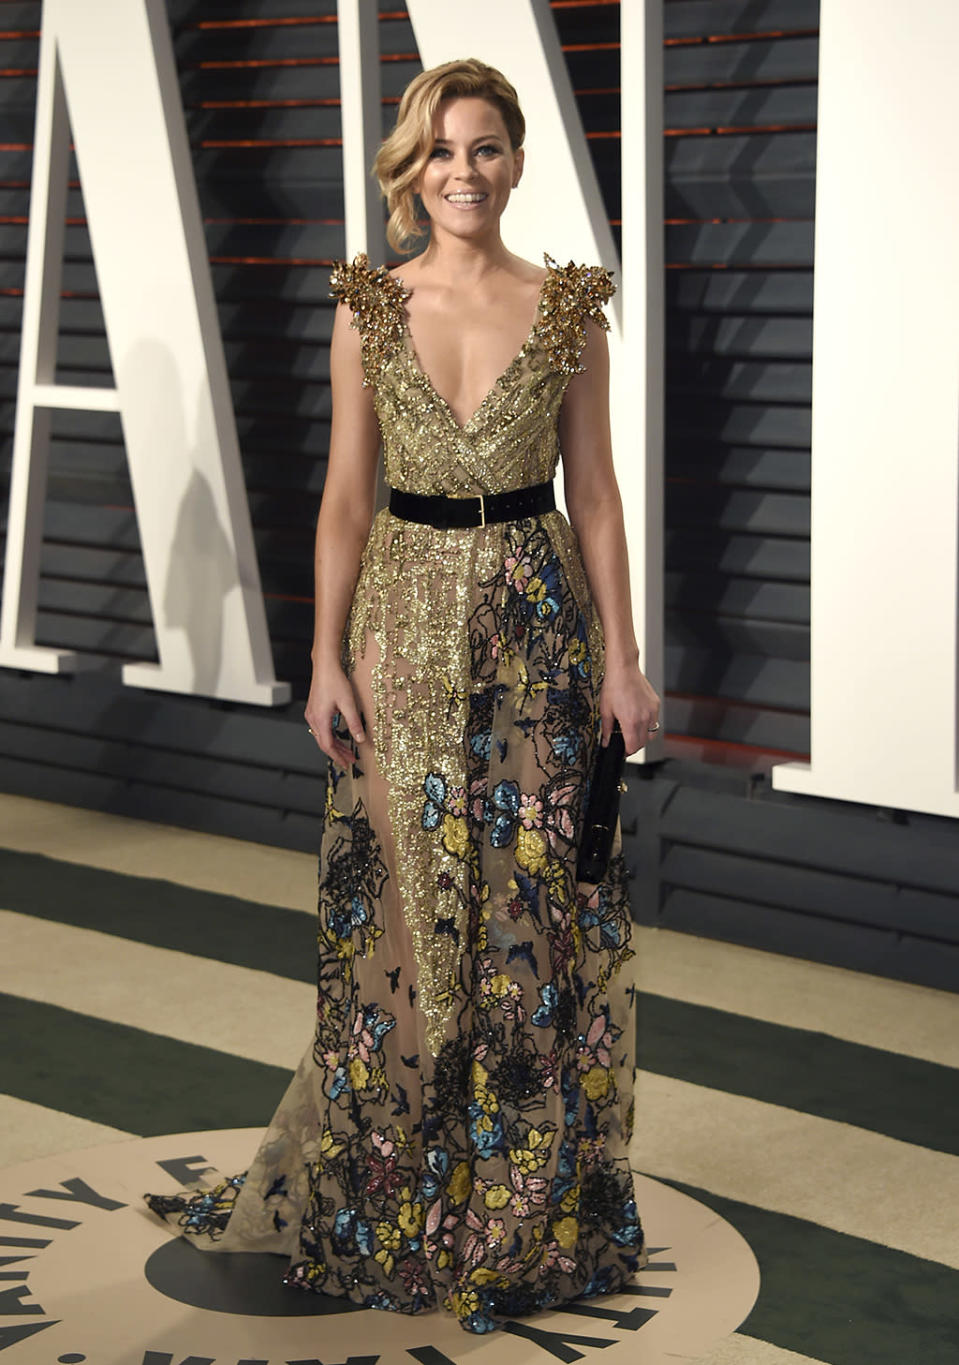 <p>Elizabeth Banks arrives at the Vanity Fair Oscar Party on Sunday, Feb. 26, 2017, in Beverly Hills, Calif. (Photo by Evan Agostini/Invision/AP) </p>